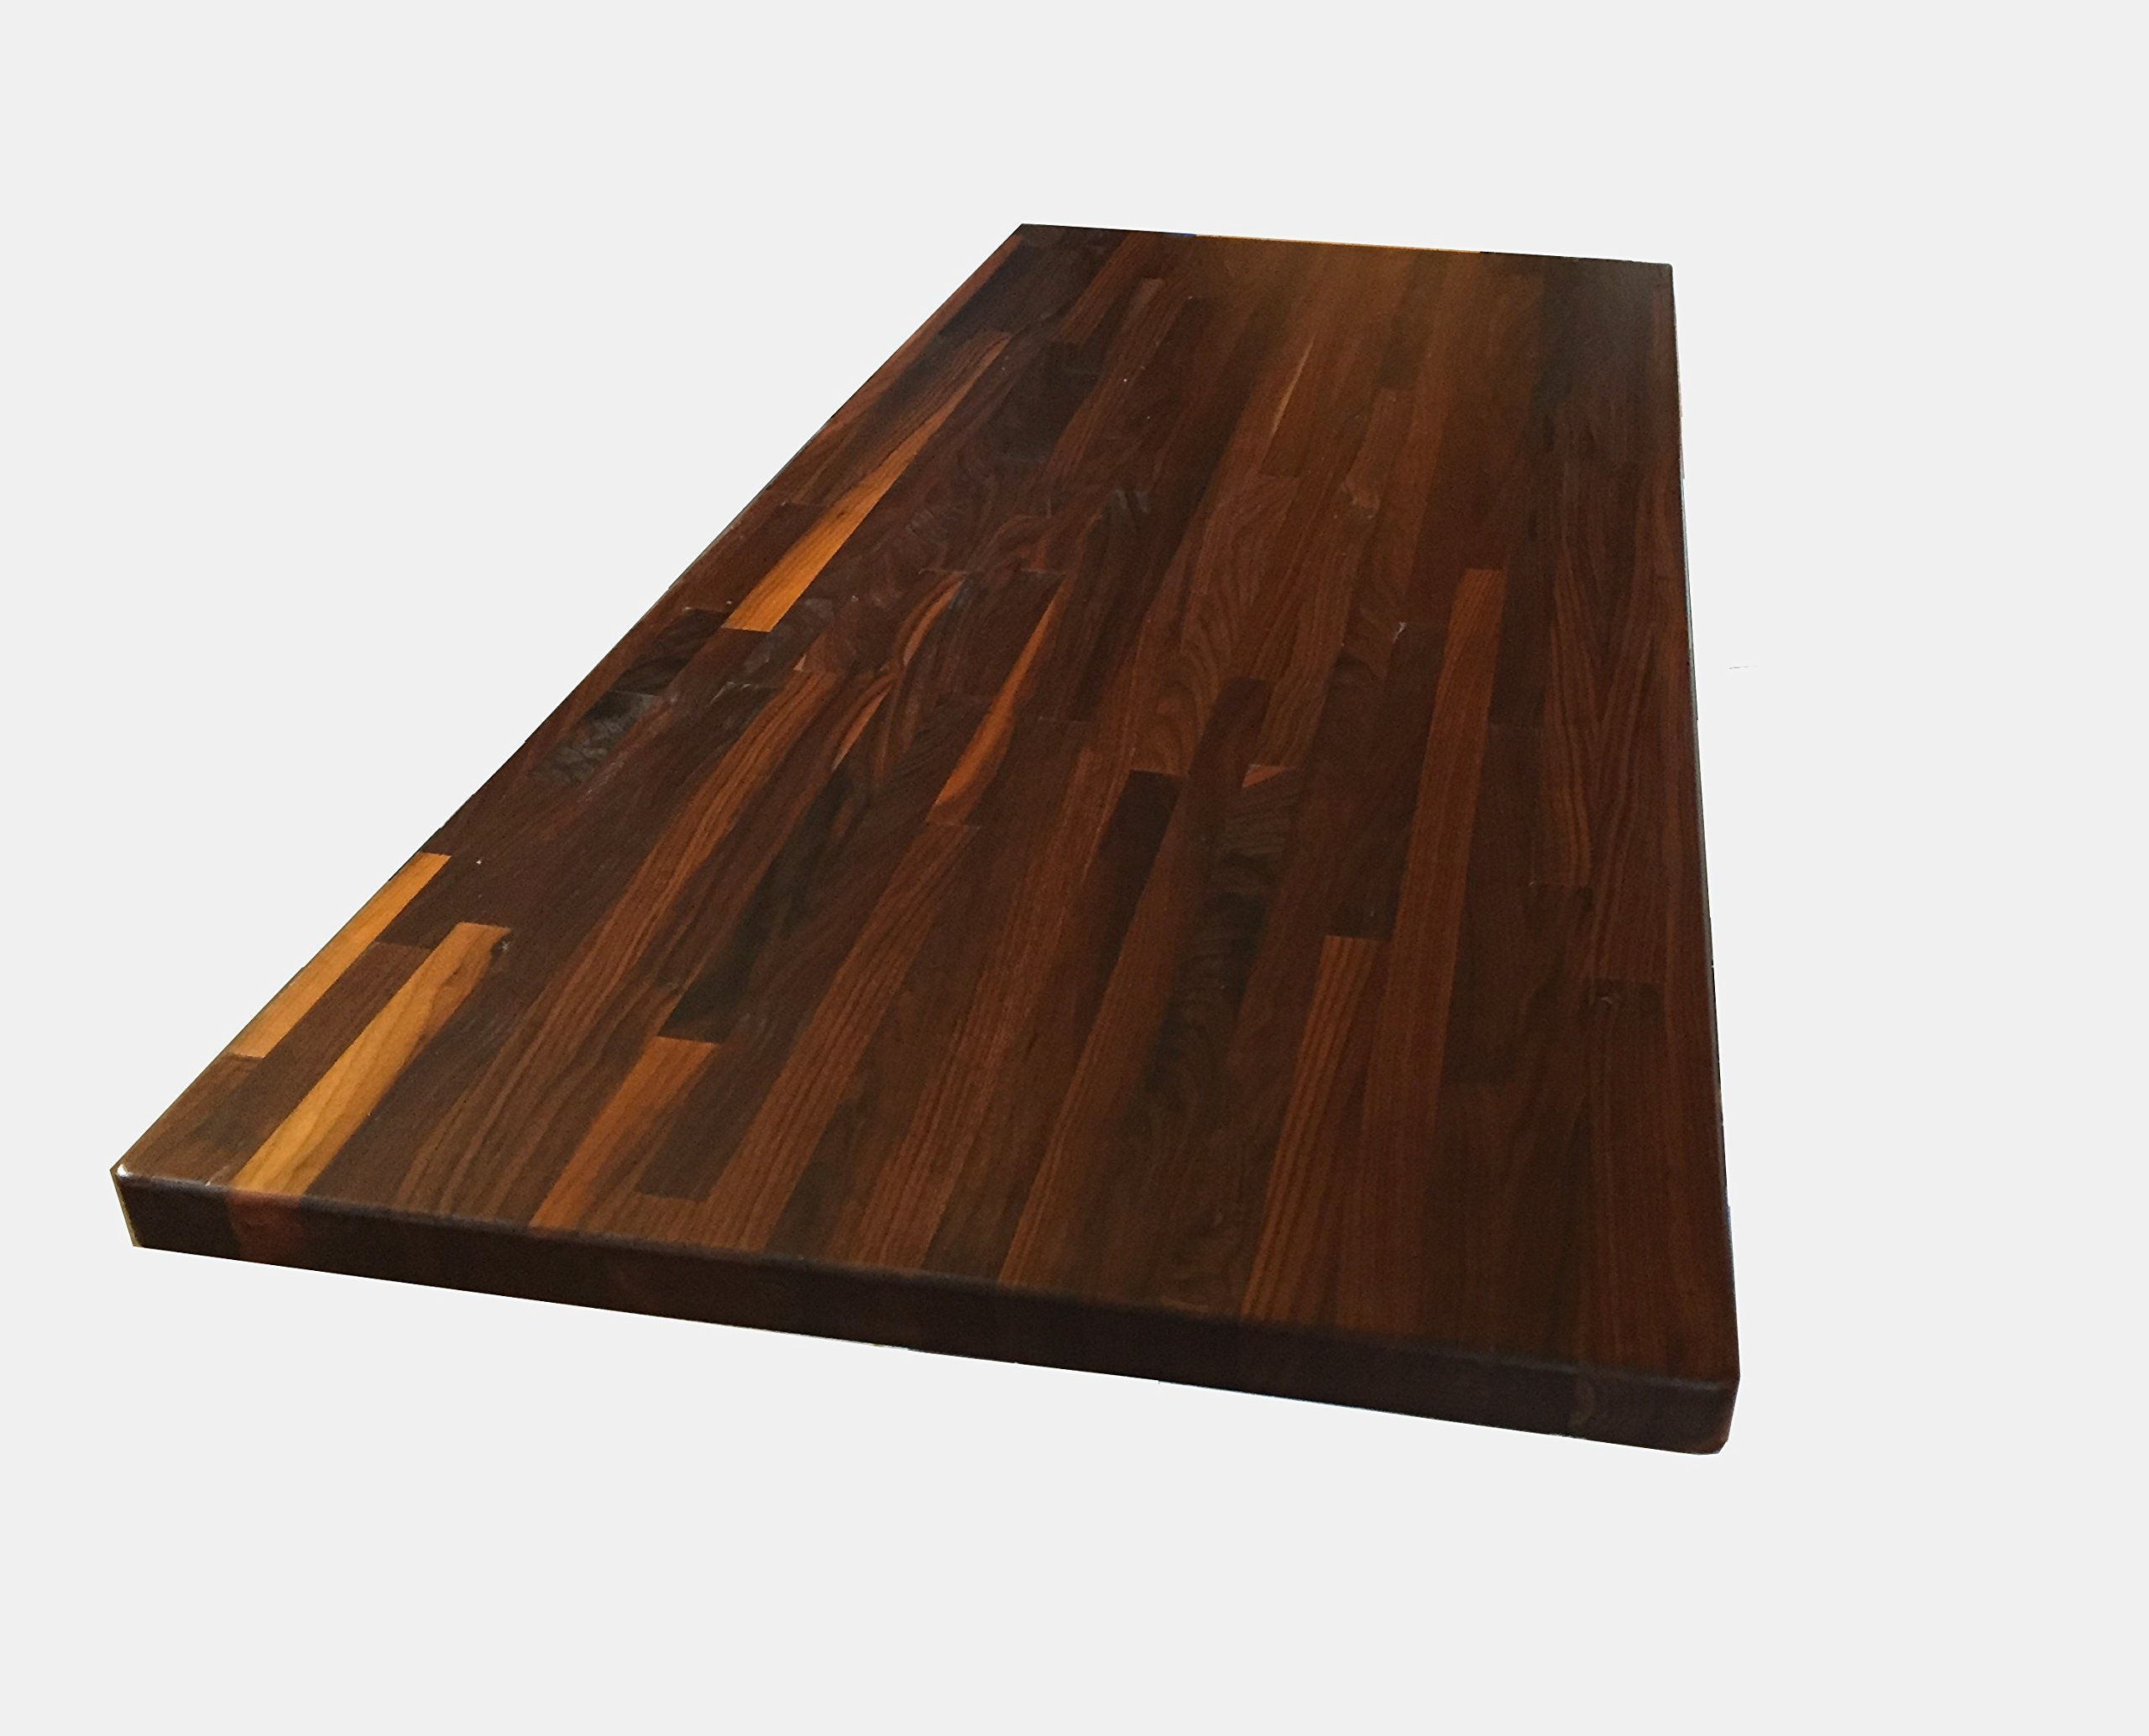 Forever Joint Walnut Butcher Block Wood Countertop - 1.5'' x 26'' x 96''